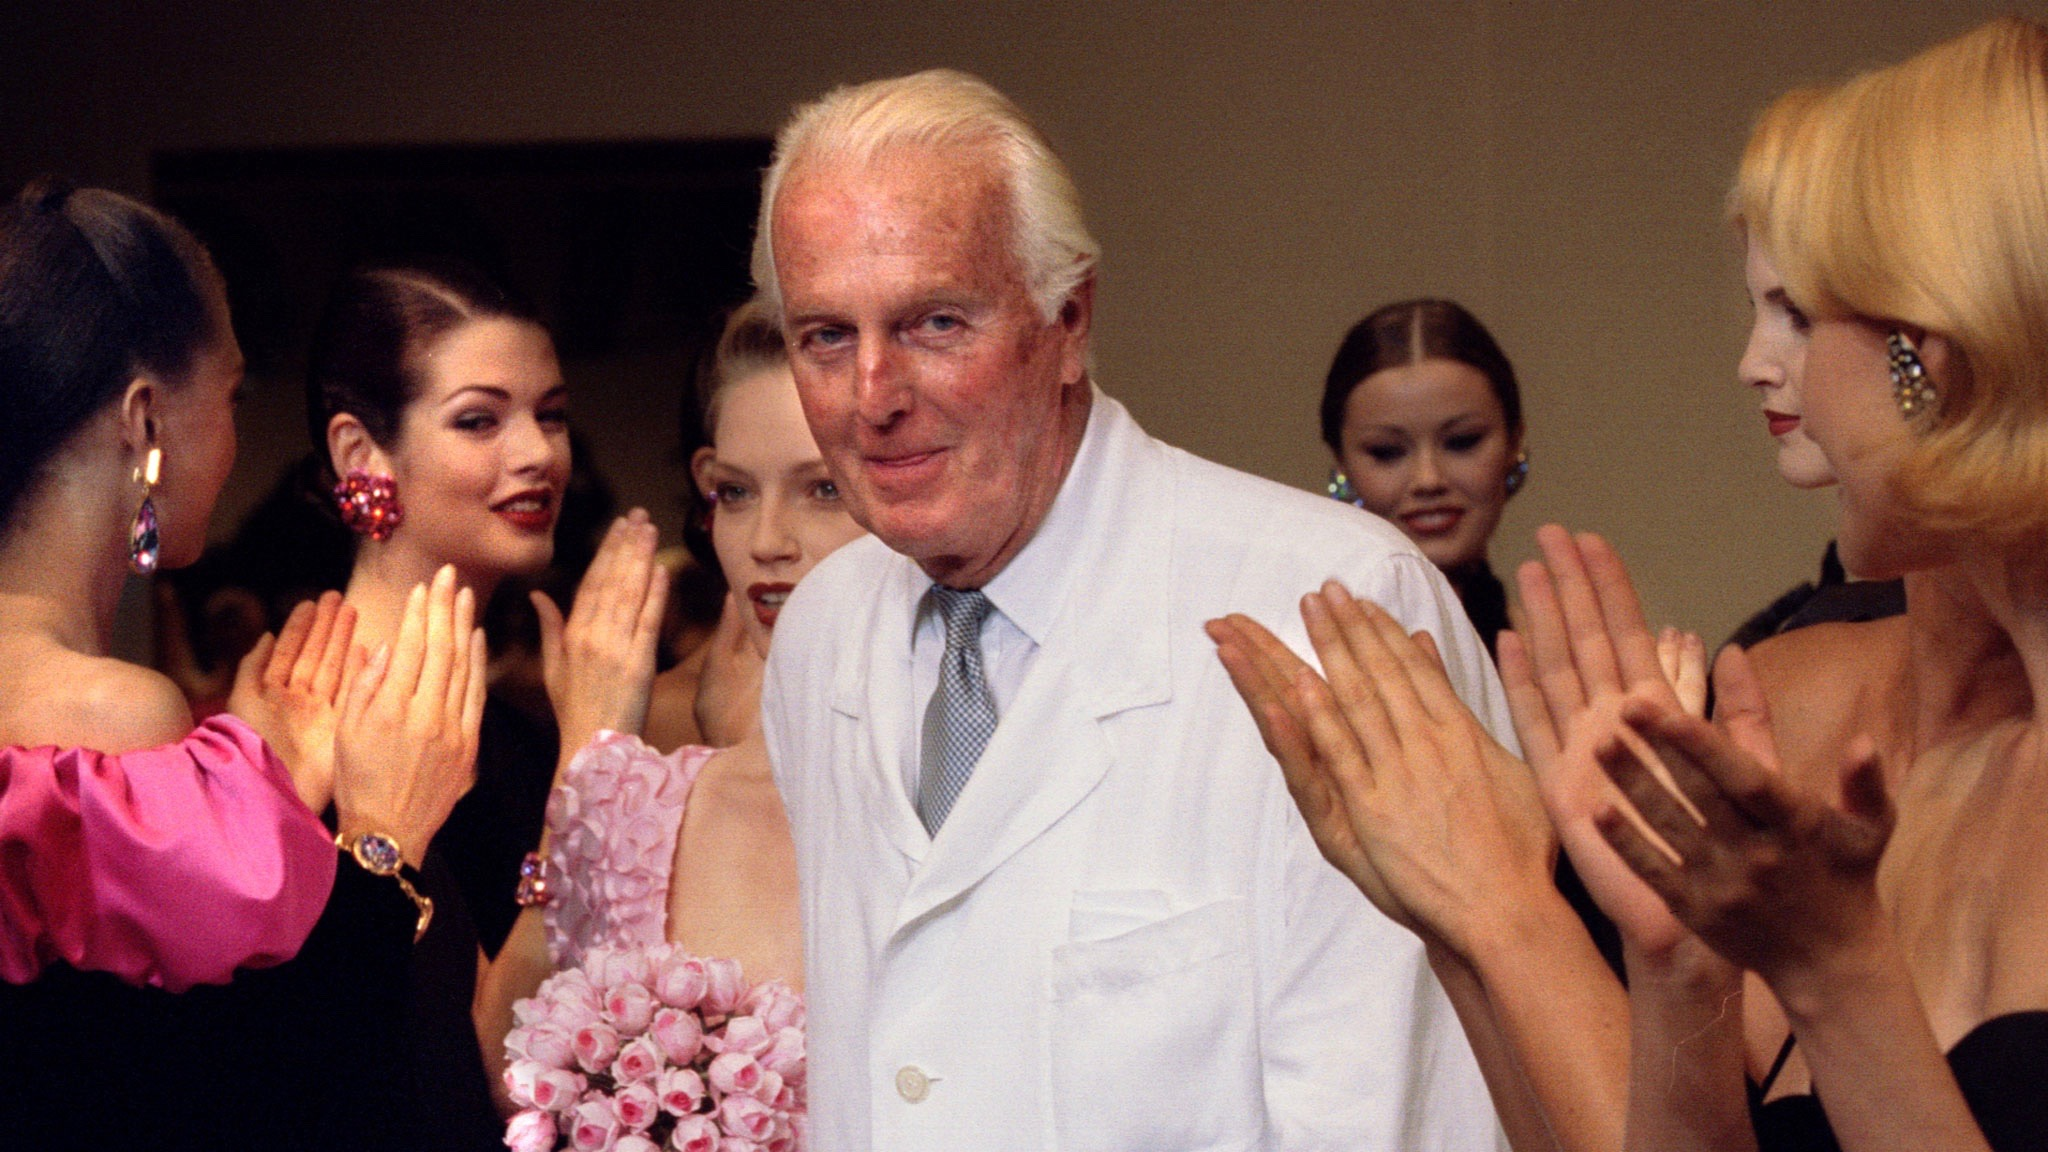 The late great Hubert de Givenchy in 1995.